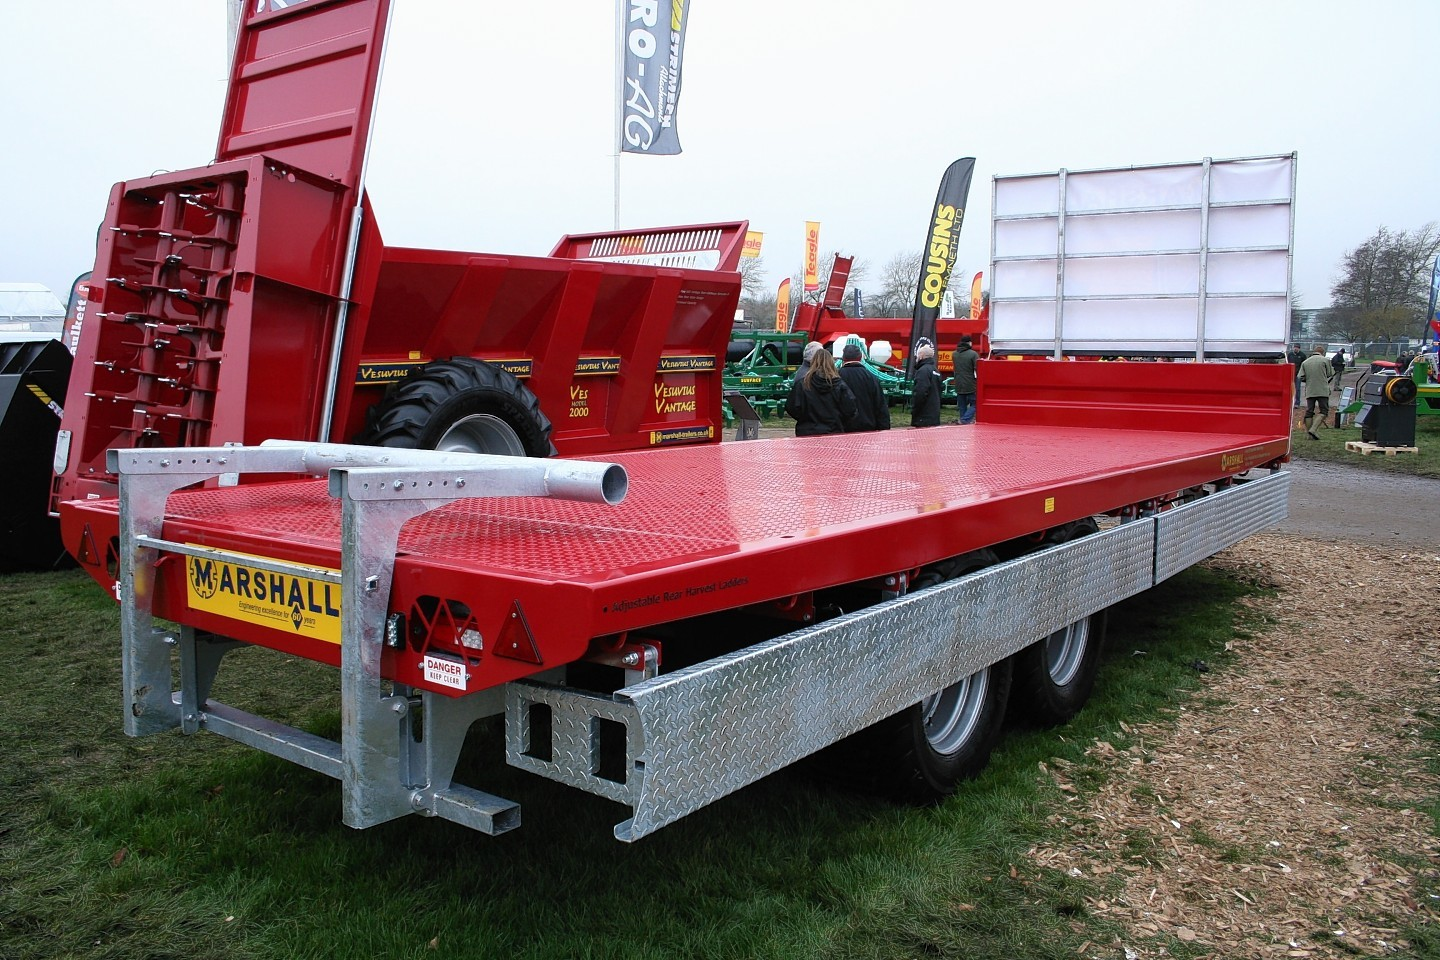 The Marshall BC flatbed trailer comes with new features for securing loads and making it easier to level off filled potato boxes.